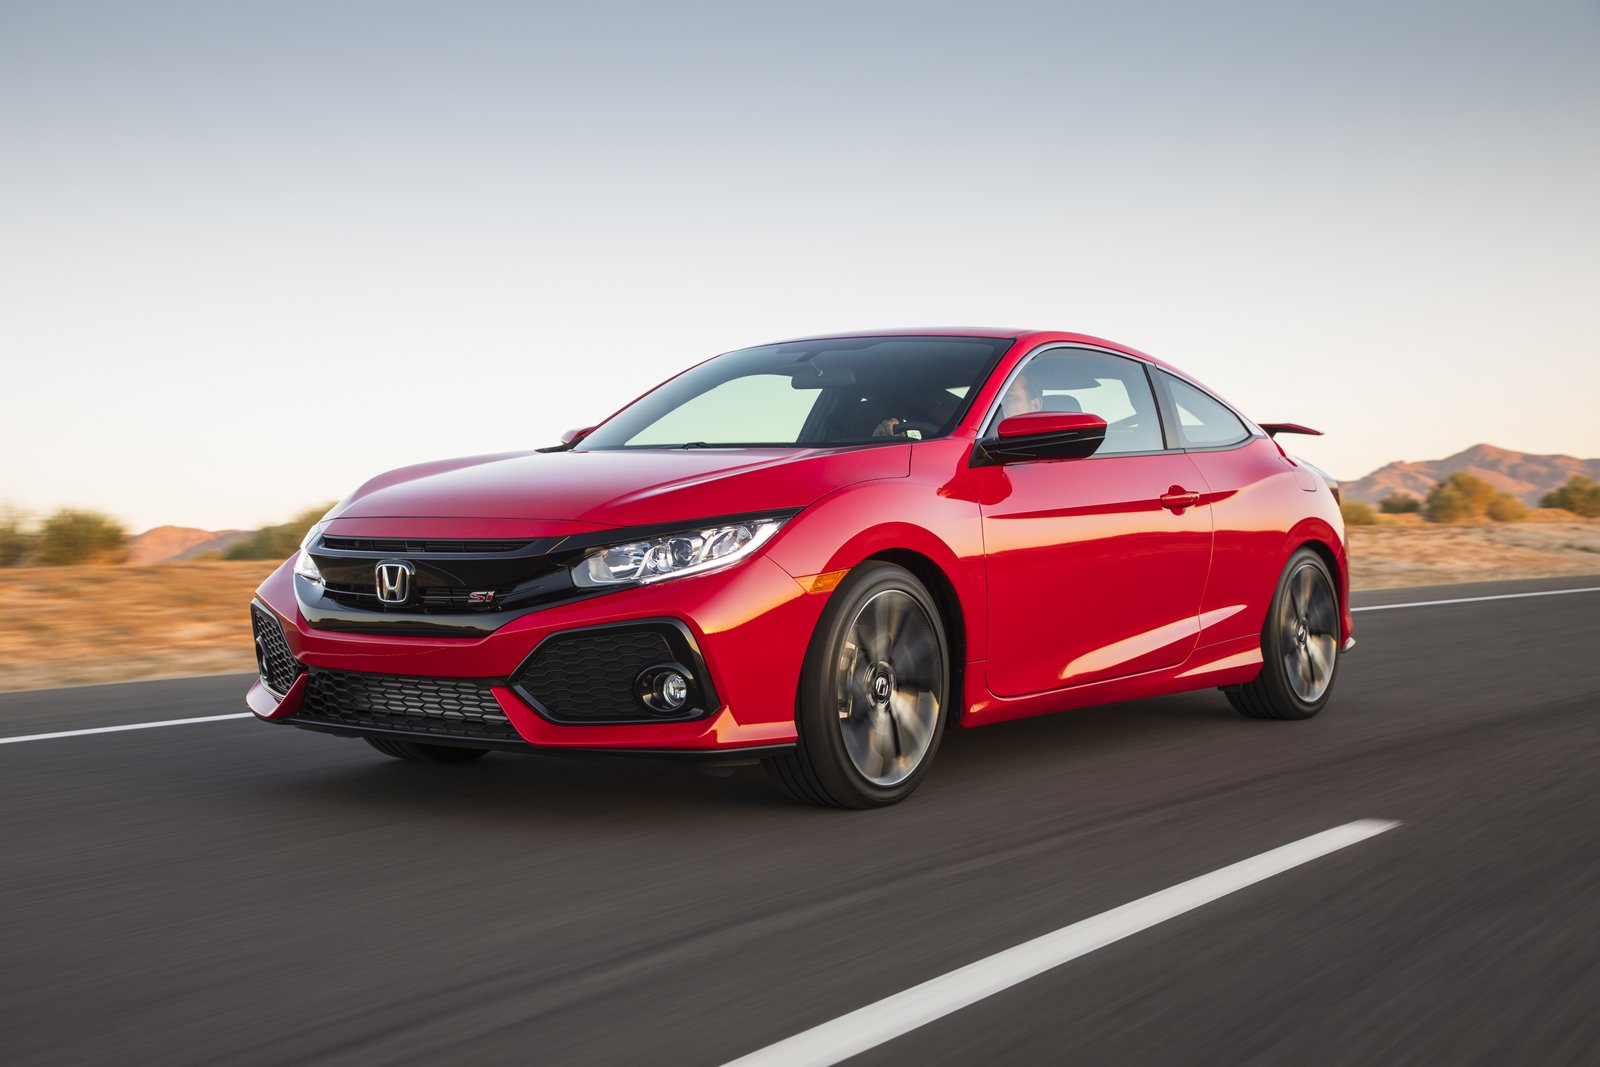 2017 Honda Civic Gas Mileage >> Engineering Explained Finds Turbo 2017 Honda Civic Si Pretty Good, But Not Perfect